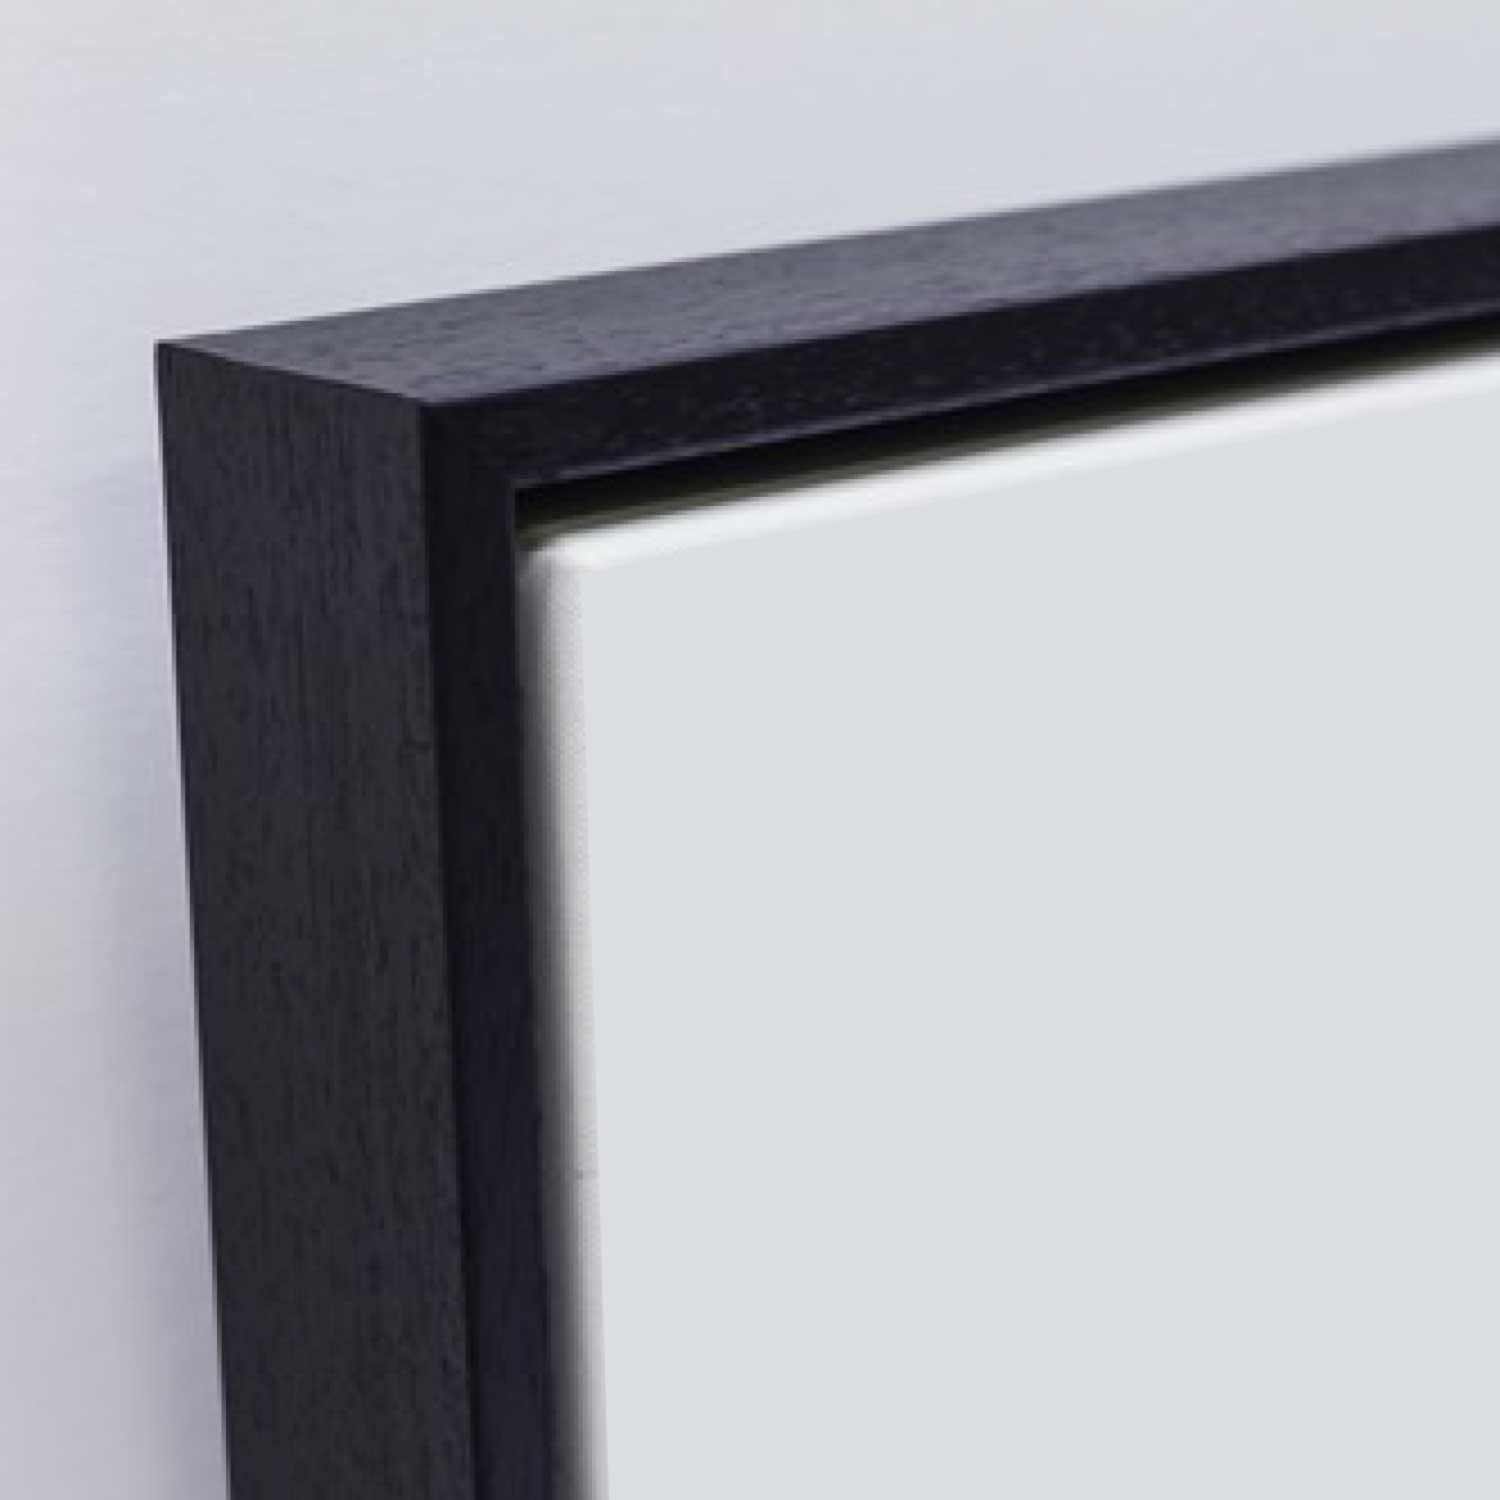 Framed Canvas Houston in black night colour